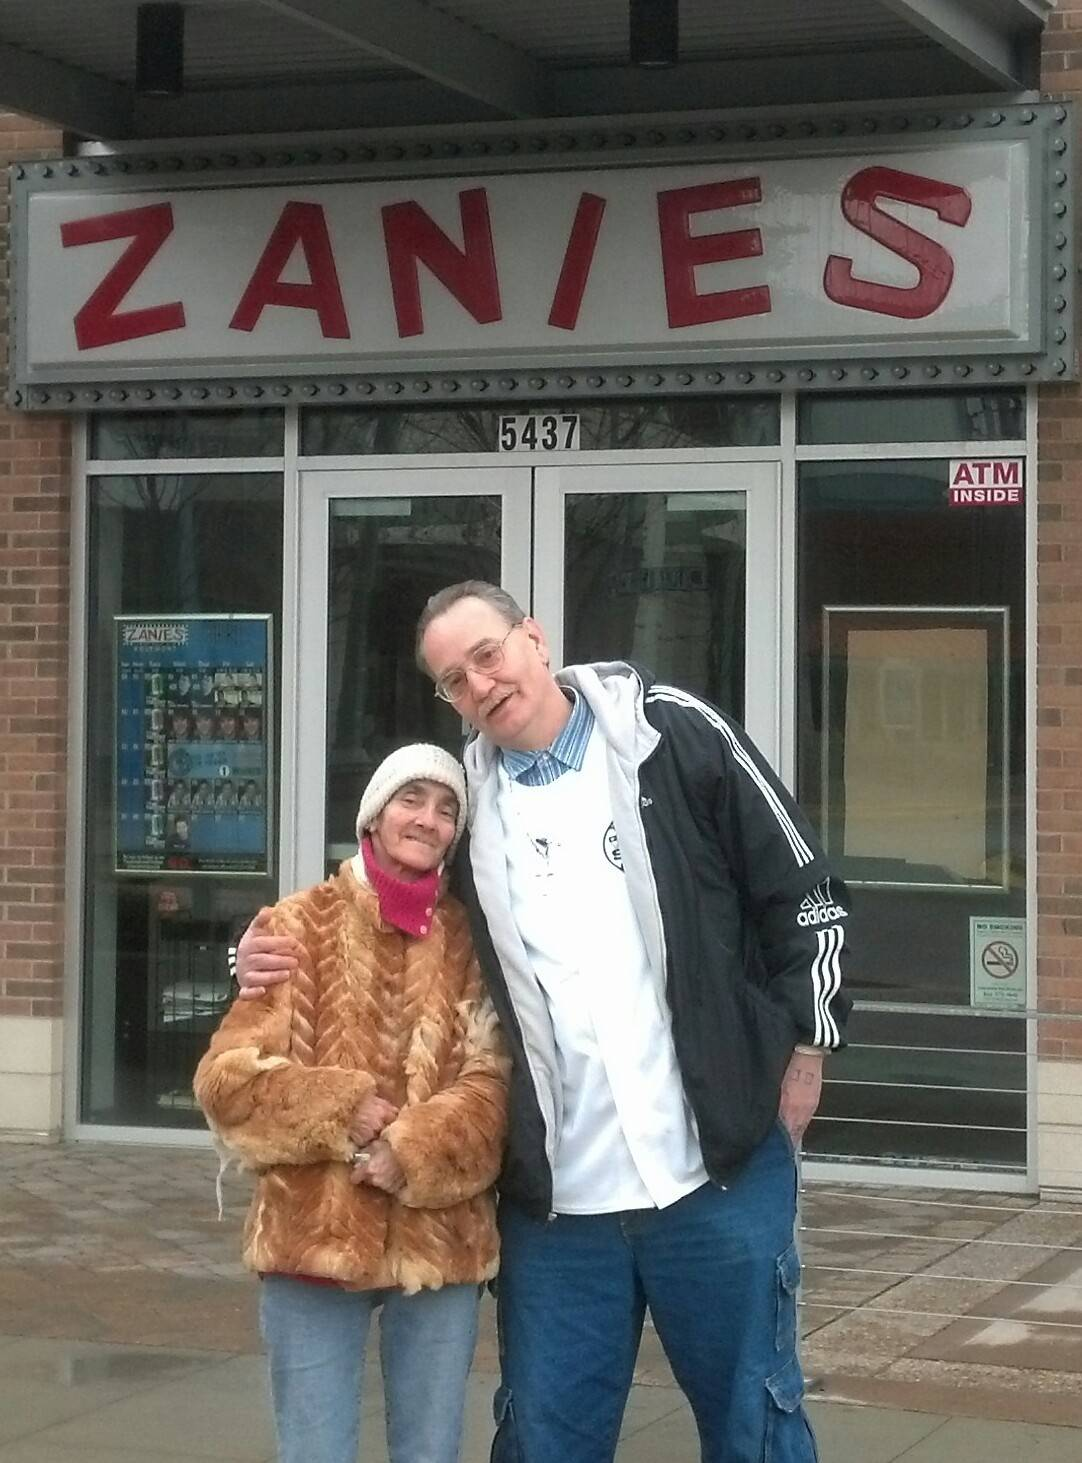 A benefit at Zanies Comedy Night Club in Rosemont raised more than $7,000 for Michael Masalski and Marjorie Branly. Living in a mobile home damaged by flooding a year ago, the couple give thanks for volunteers, who are working to buy them a new home.